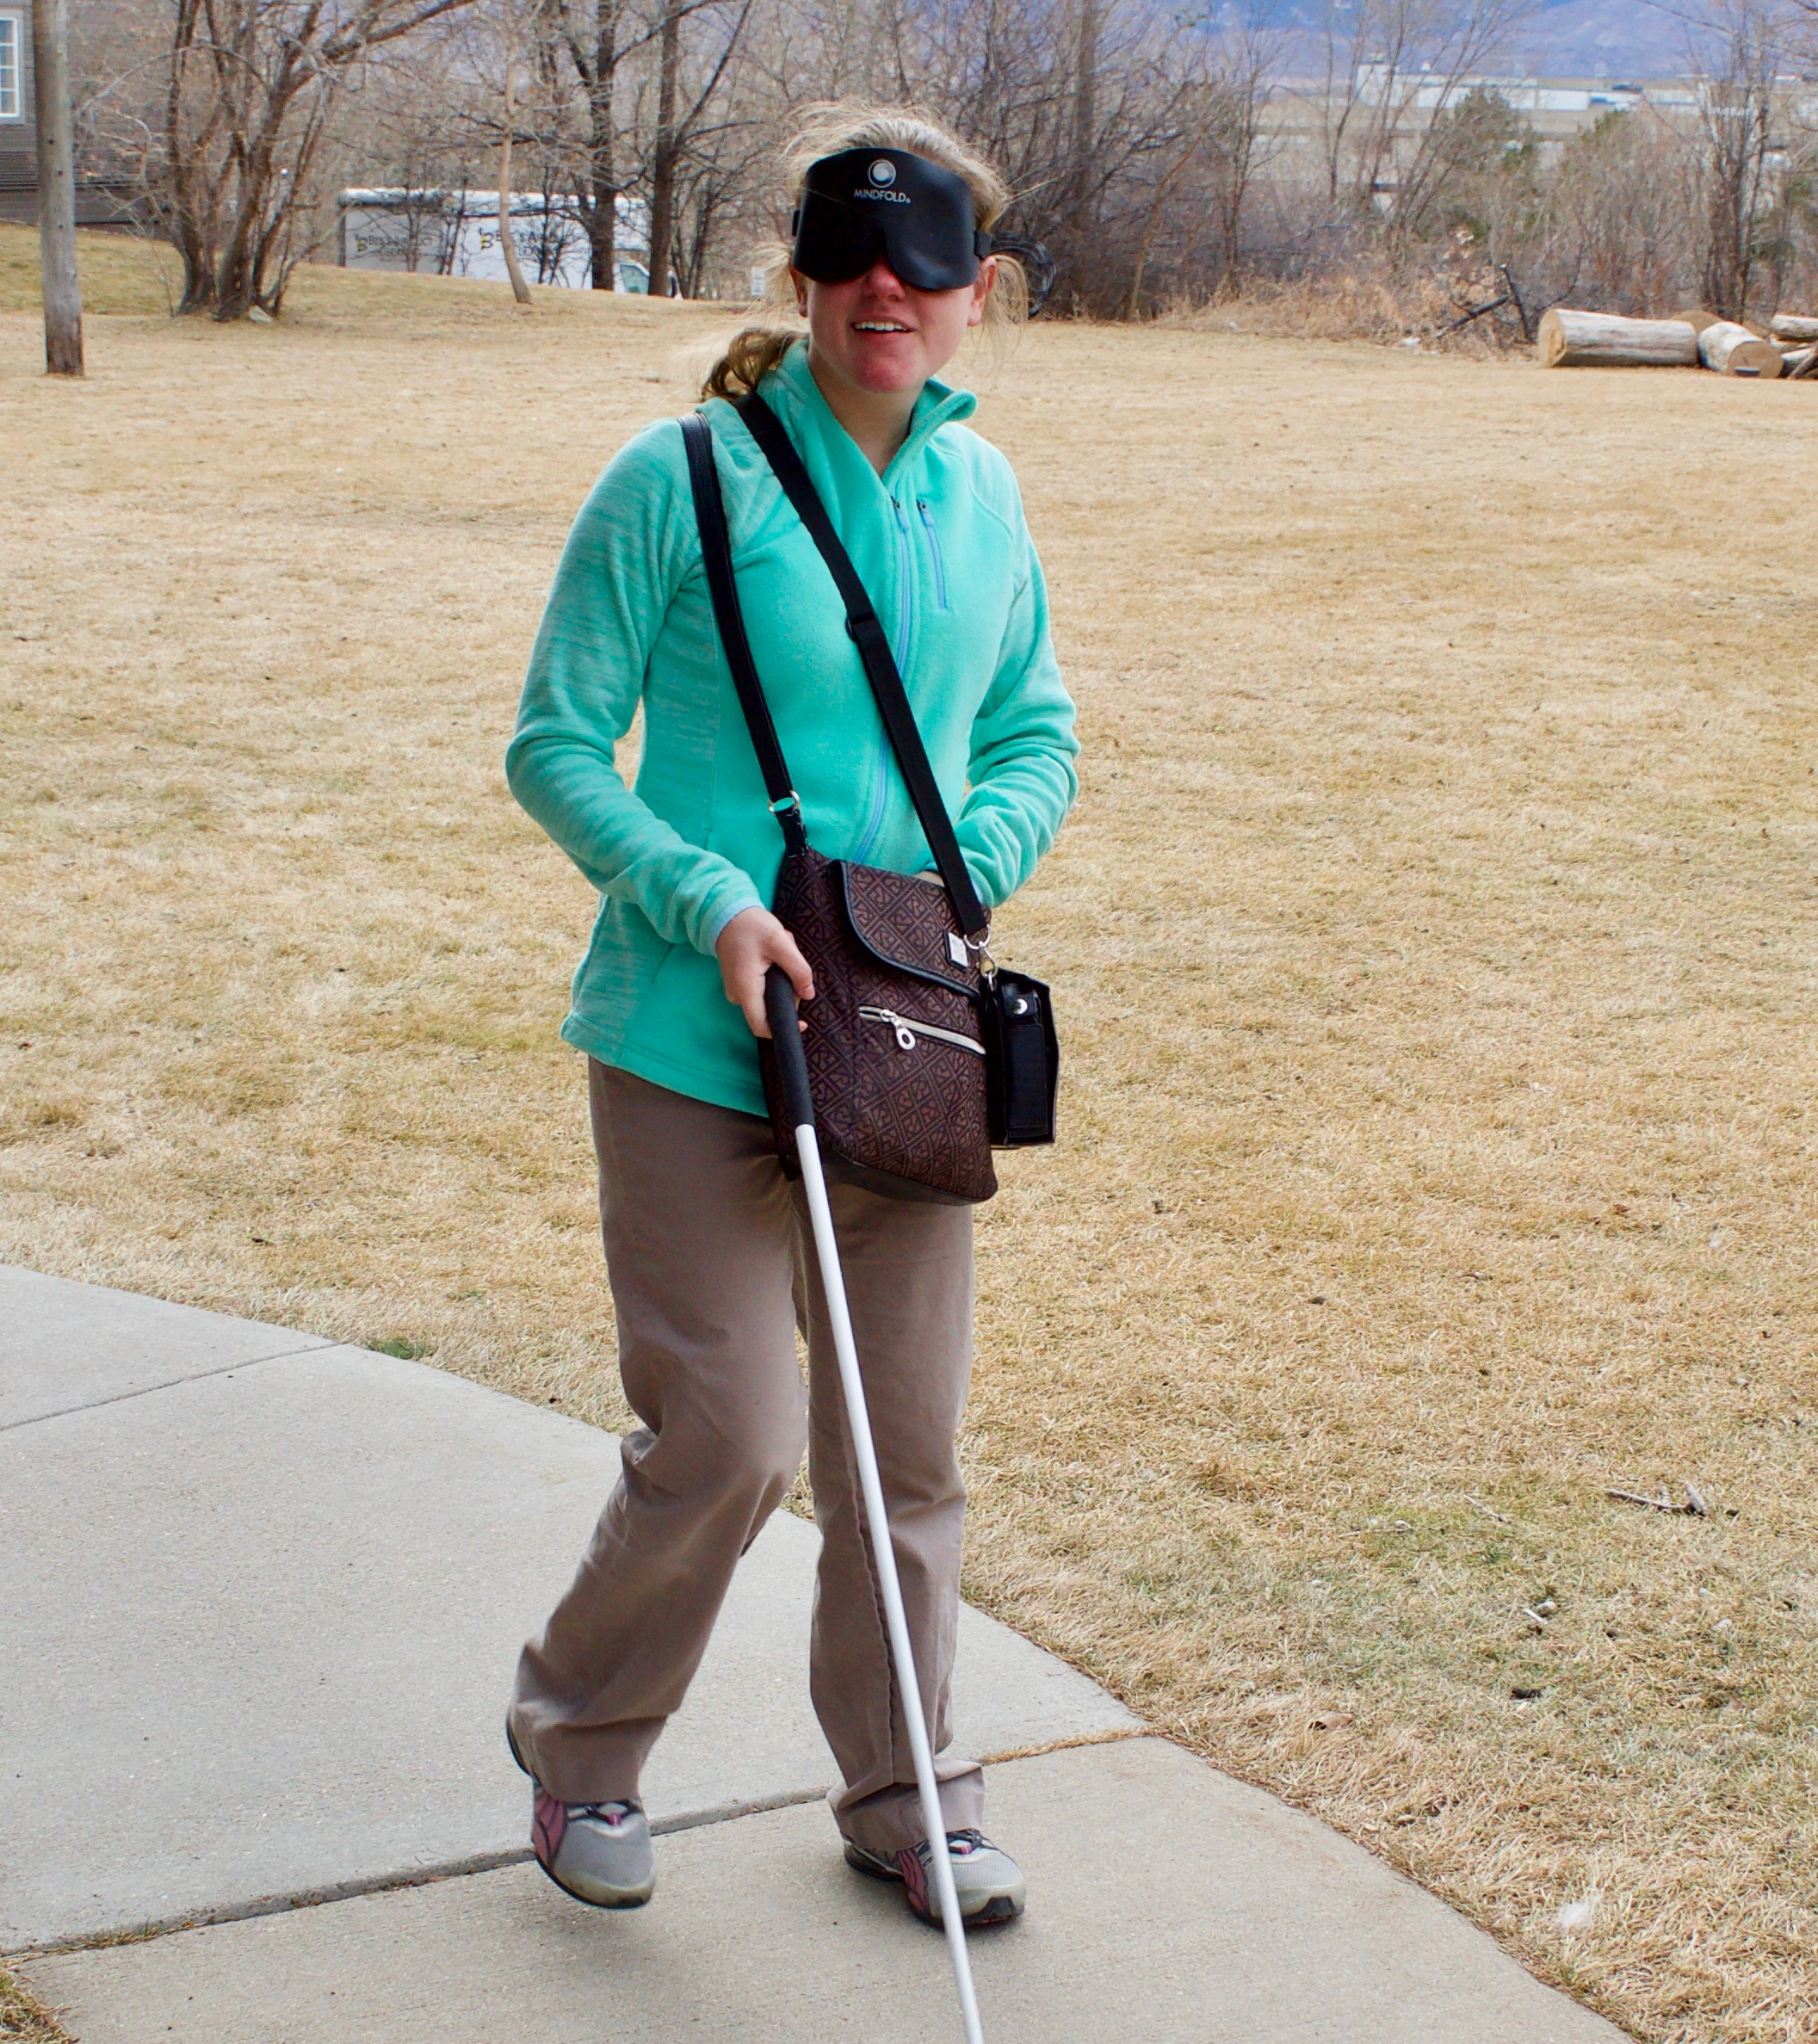 Julie M. traveling with her cane and sleepshades